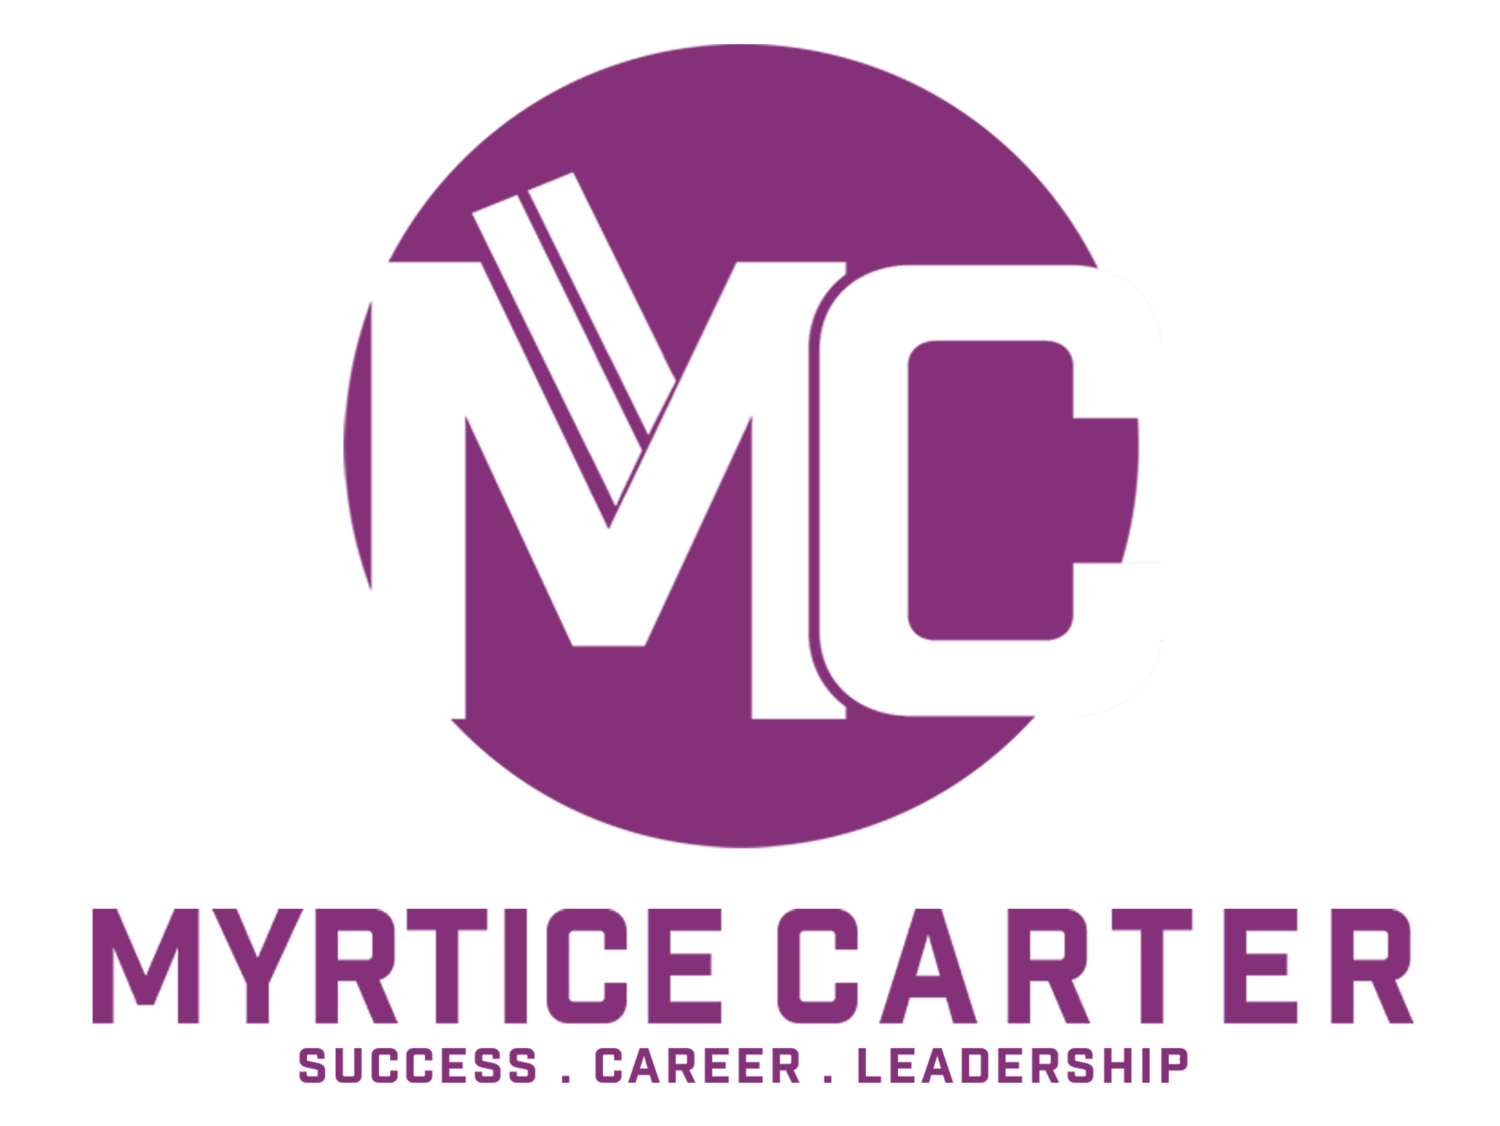 Myrtice Carter Career Coach for Millennials